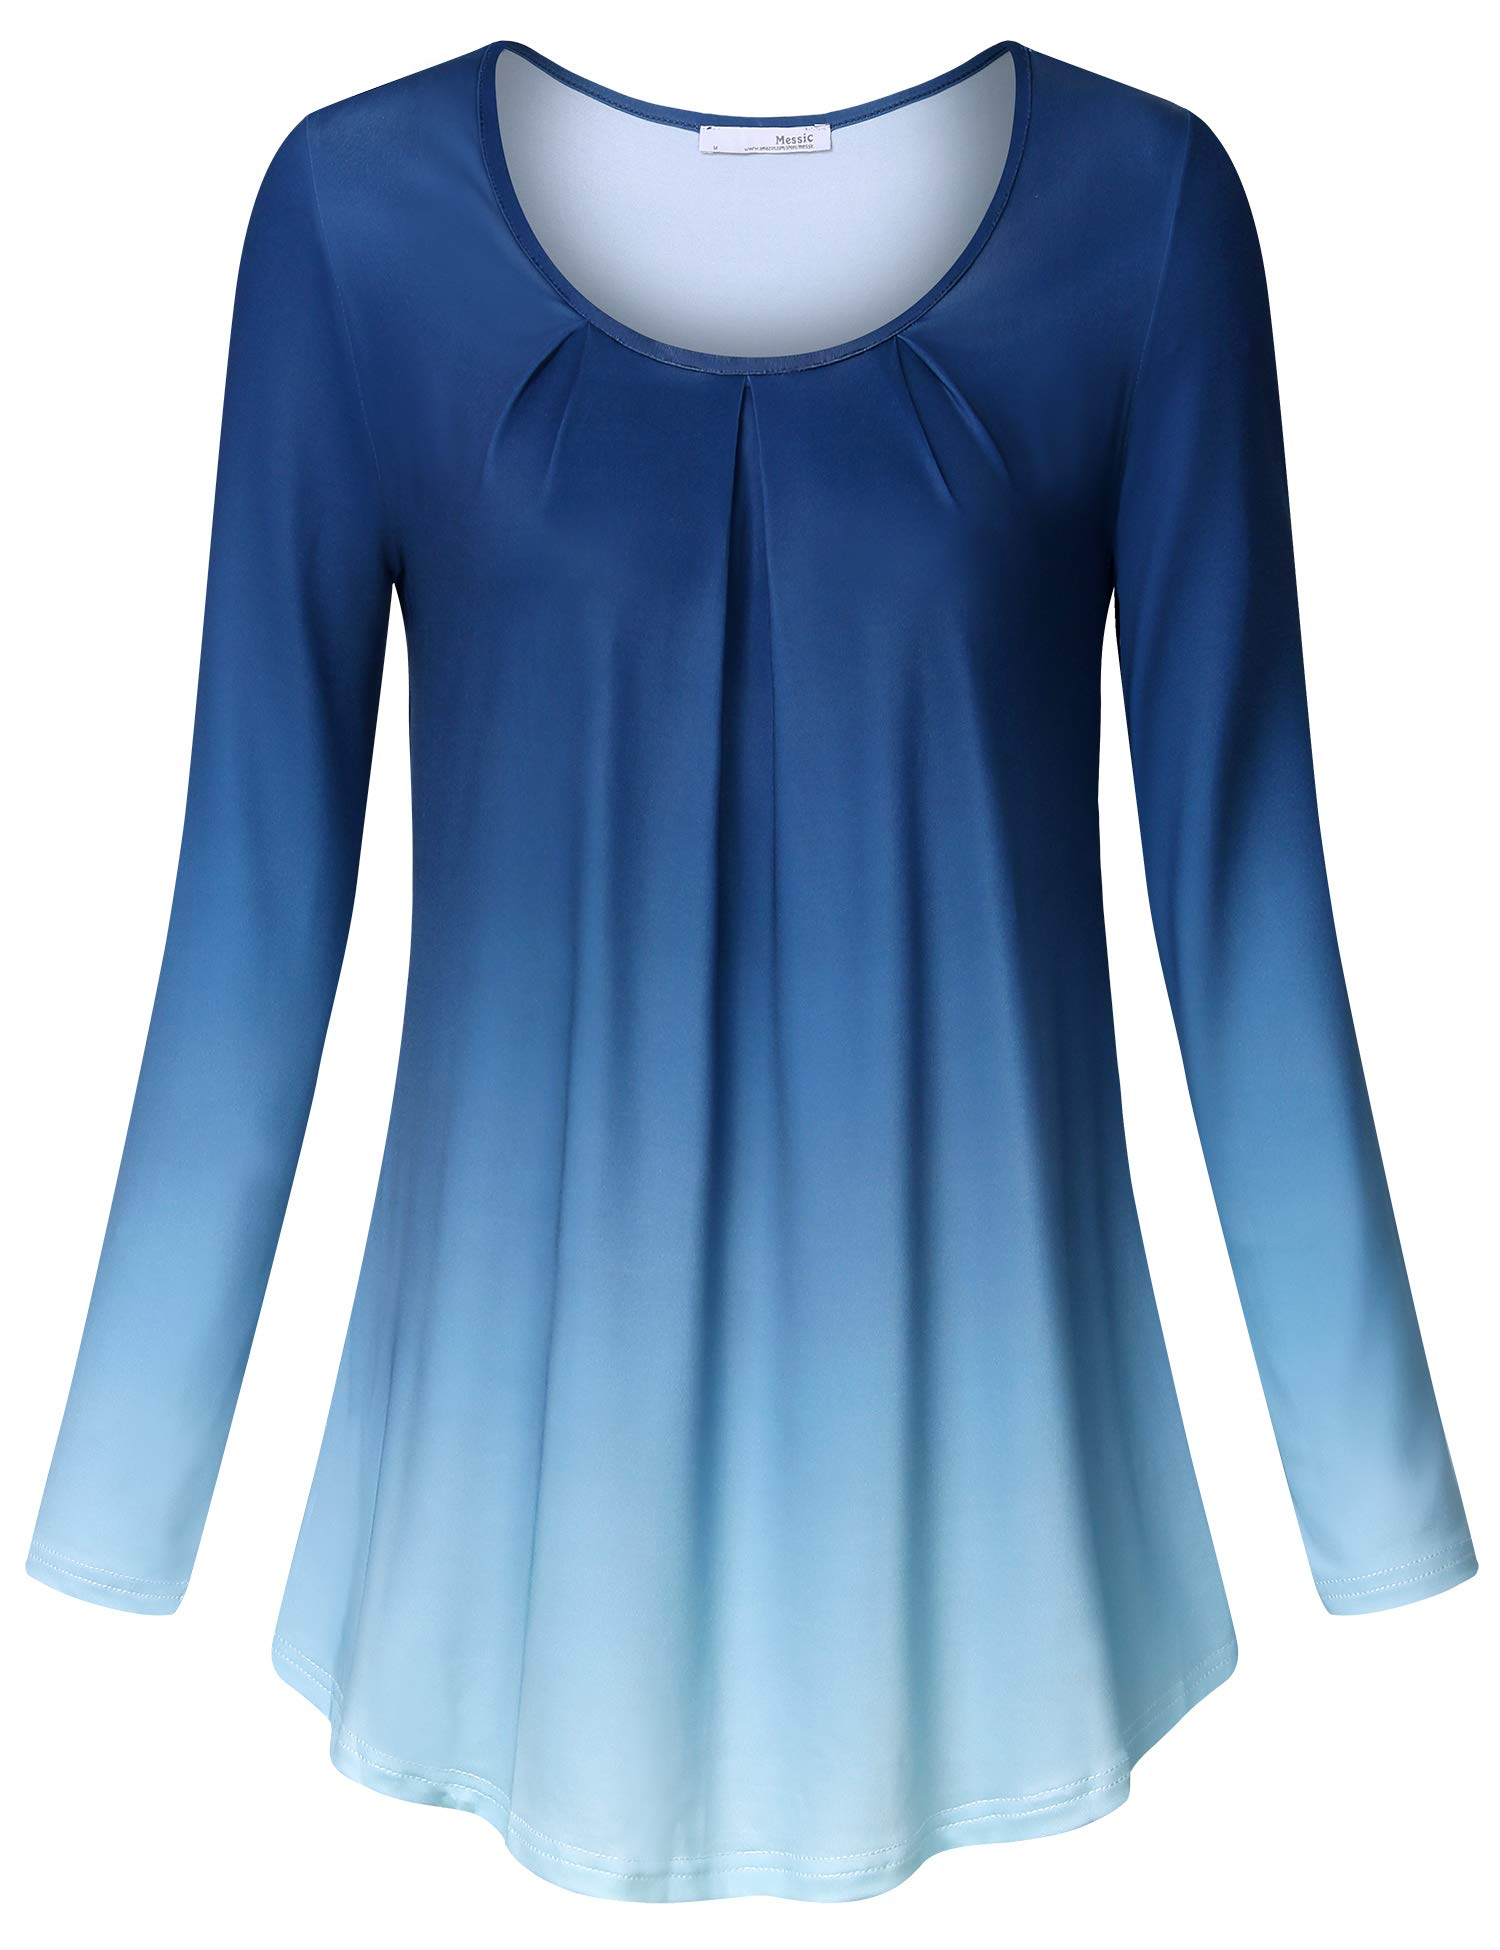 Flared Women Shirts Messic Blue Lady's Long Sleeve Style Tee Shirt Scoop Neck Loose Fit Ombre Pleated Printed Cool Stretchy Tunic Tops XX-Large